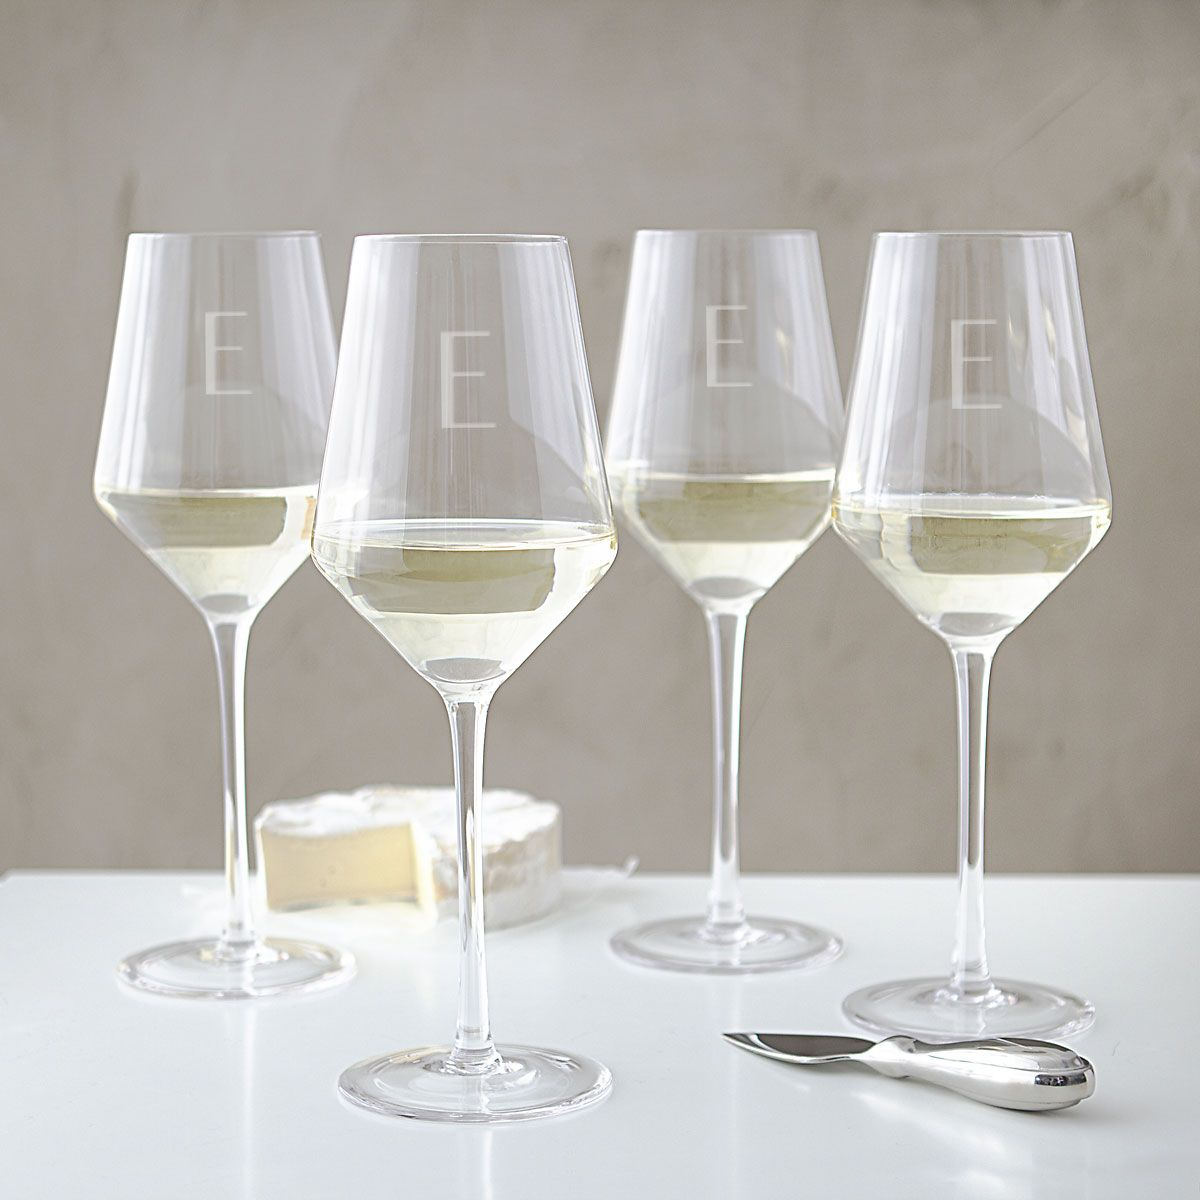 Personalized Estate White Wine Glasses